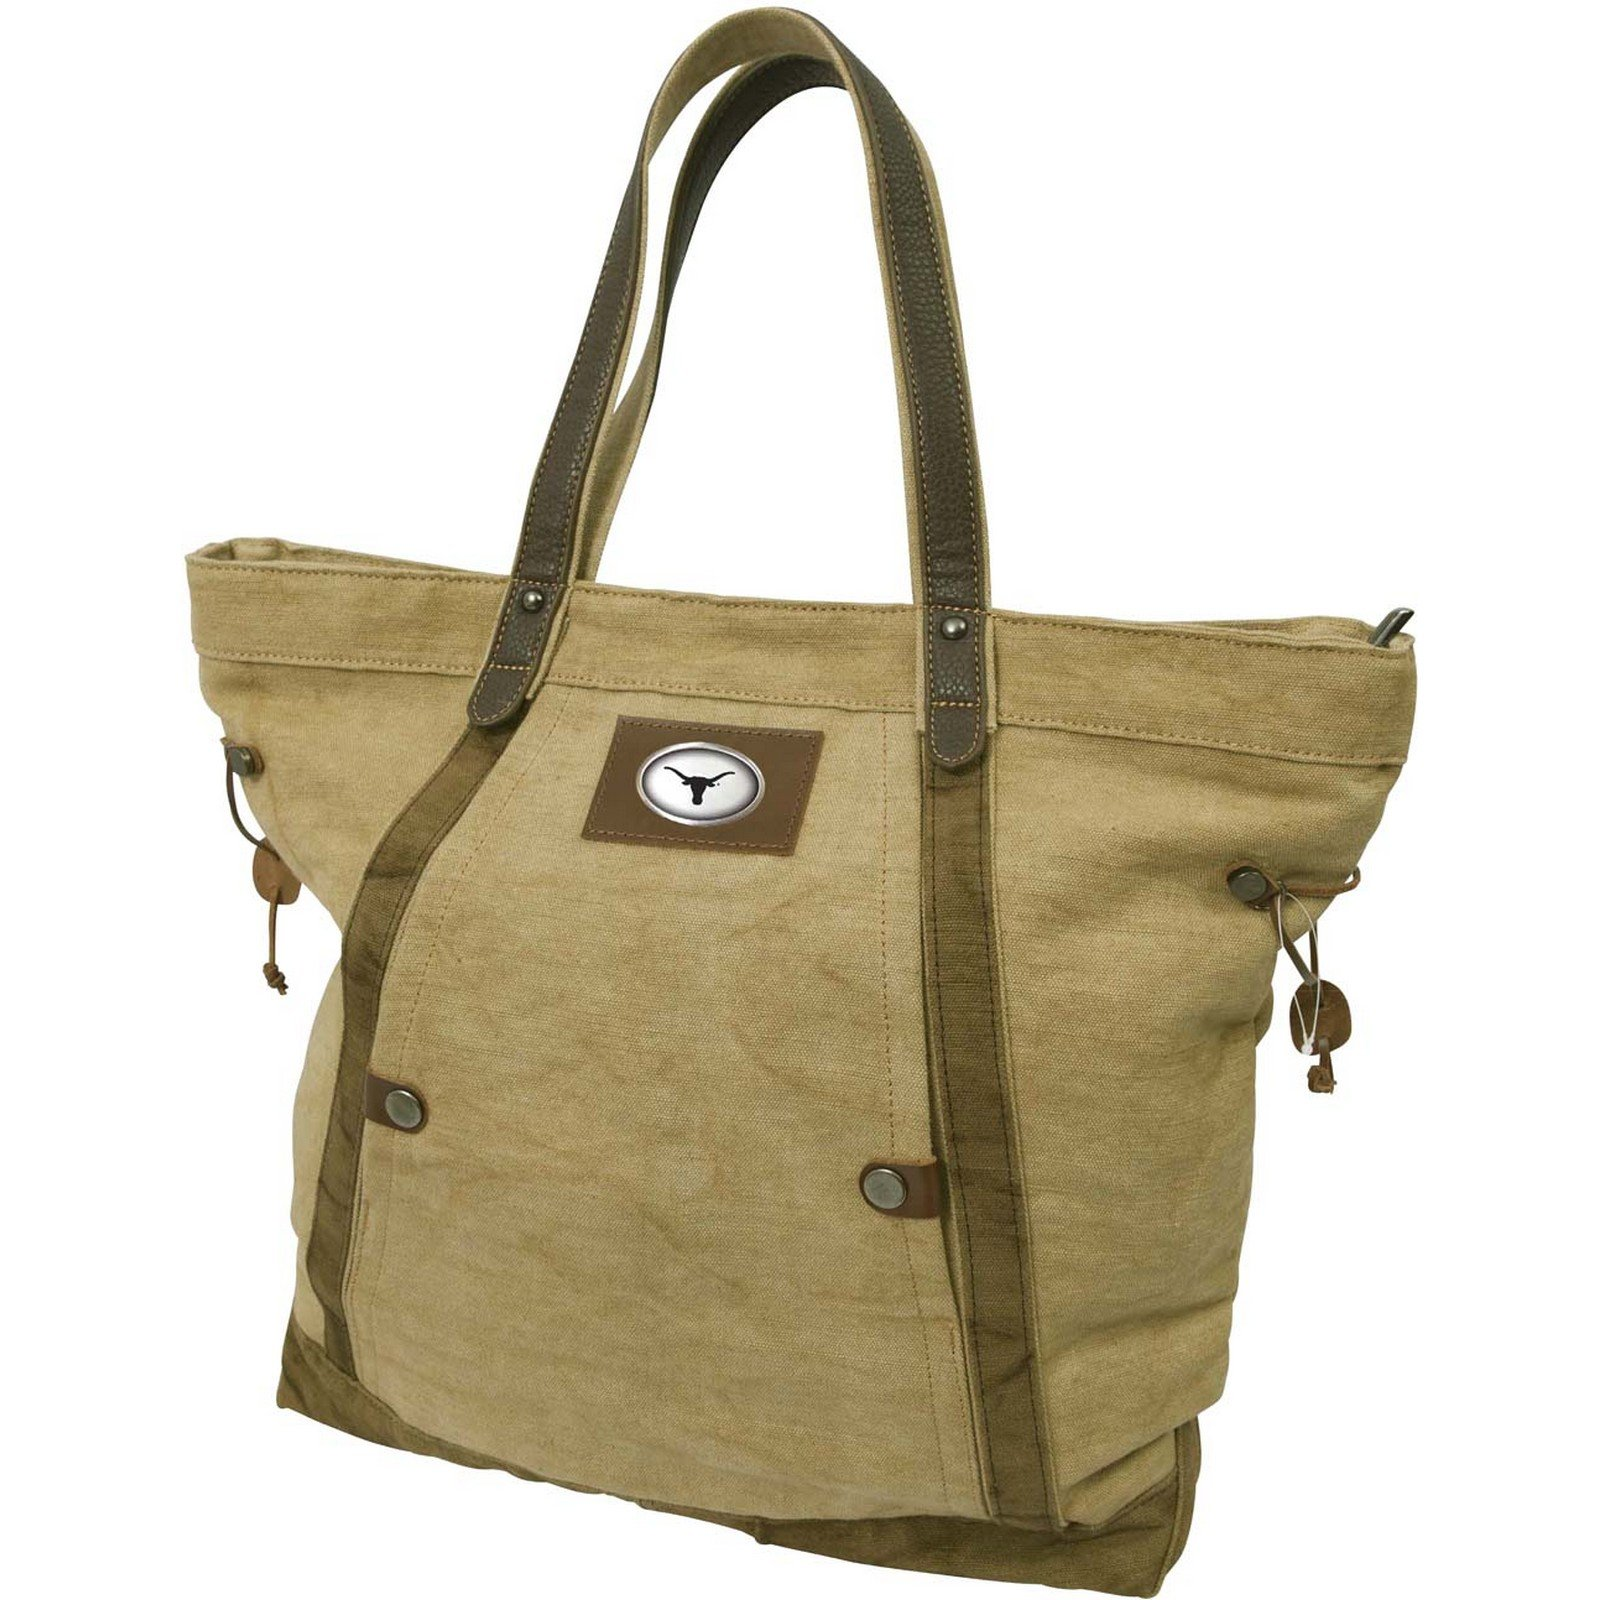 Canyon Outback 19-Inch Linen Tote Bag, Texas Longhorns